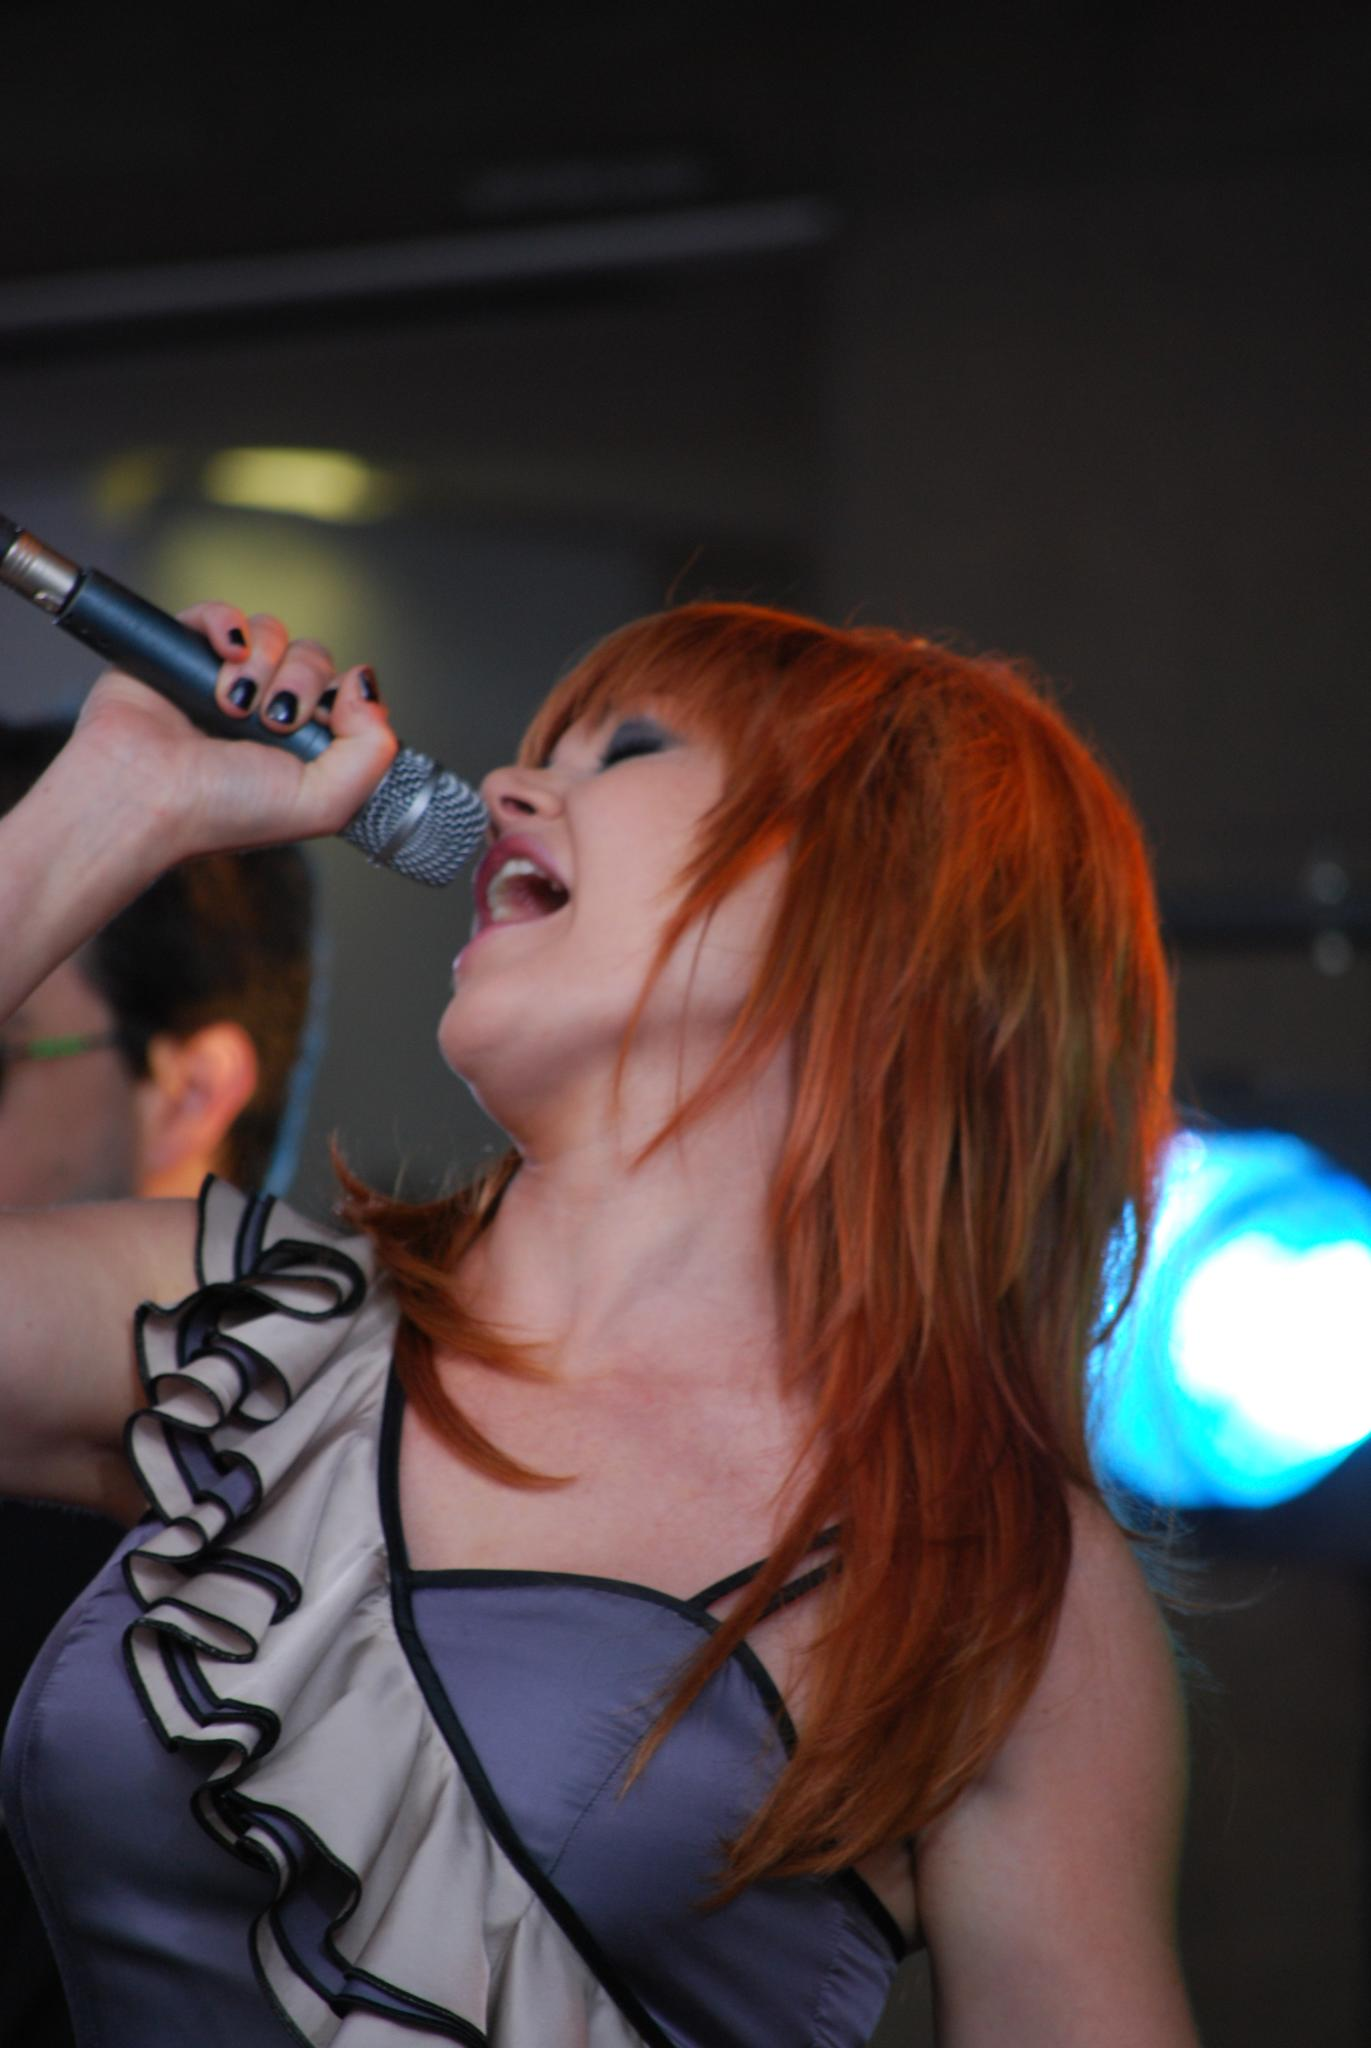 Belting - Vanessa Amorosi - Ch9 Today Show, Bourke Street Mall - Flickr - avlxyz.jpg Vanessa Amorosi singing her first number 1 single This